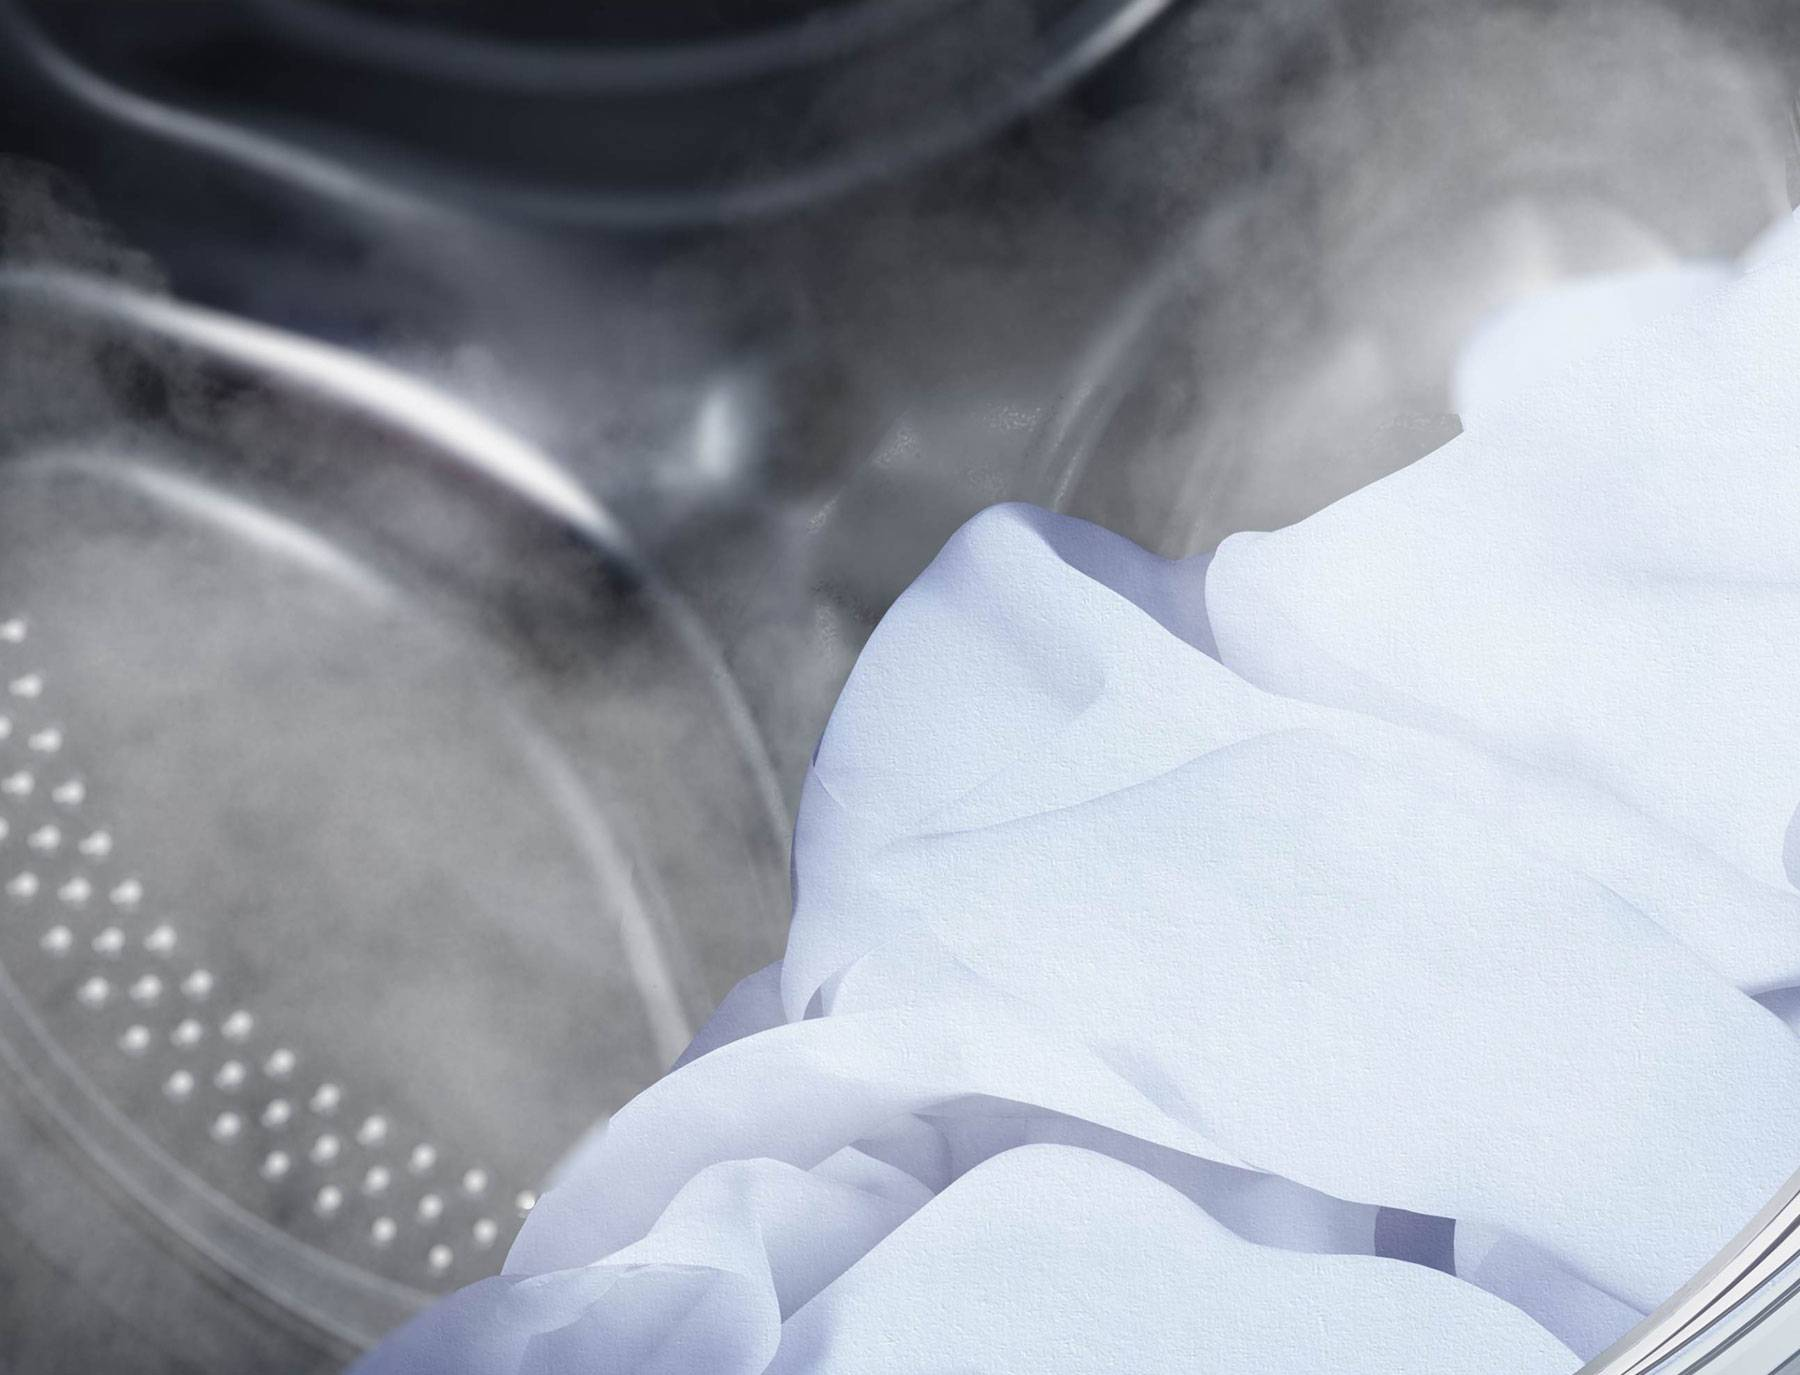 HARNESS THE POWER OF STEAM FOR A HYGIENIC CLEAN